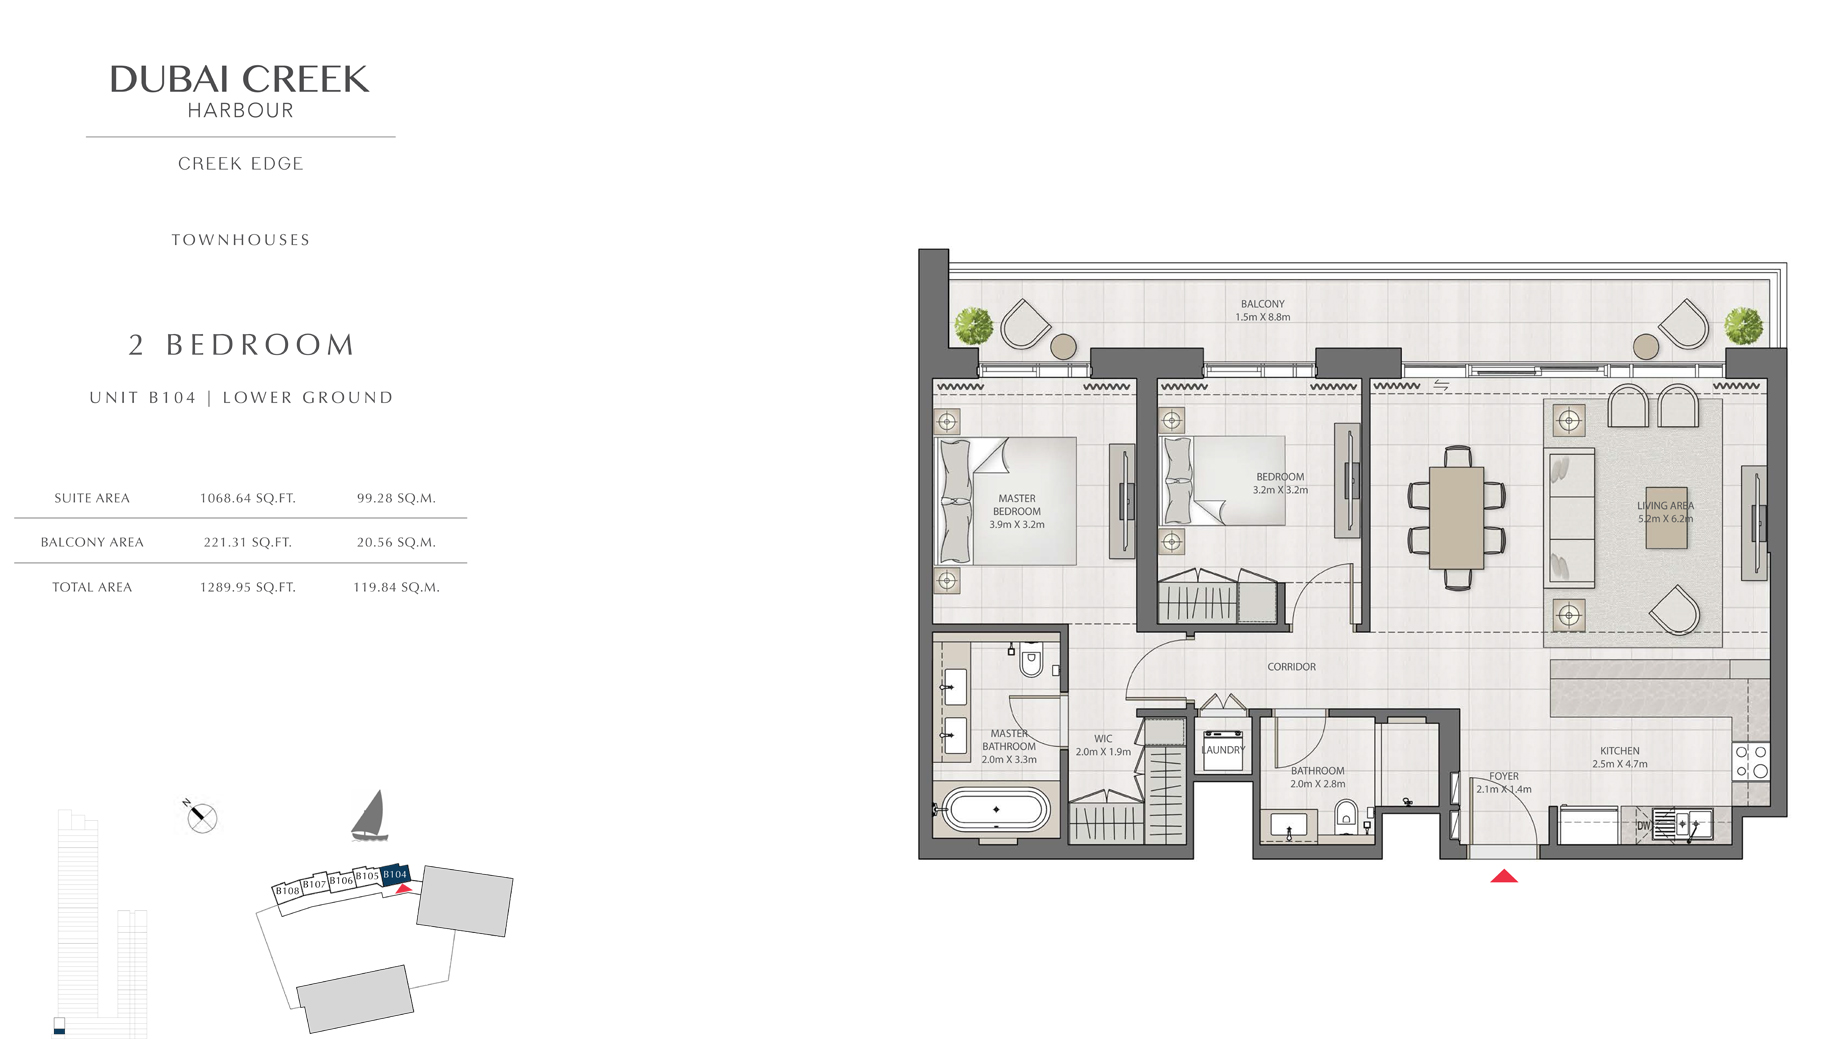 2 Bedroom Townhouses Unit B104 Level G Size 1289 sq.ft